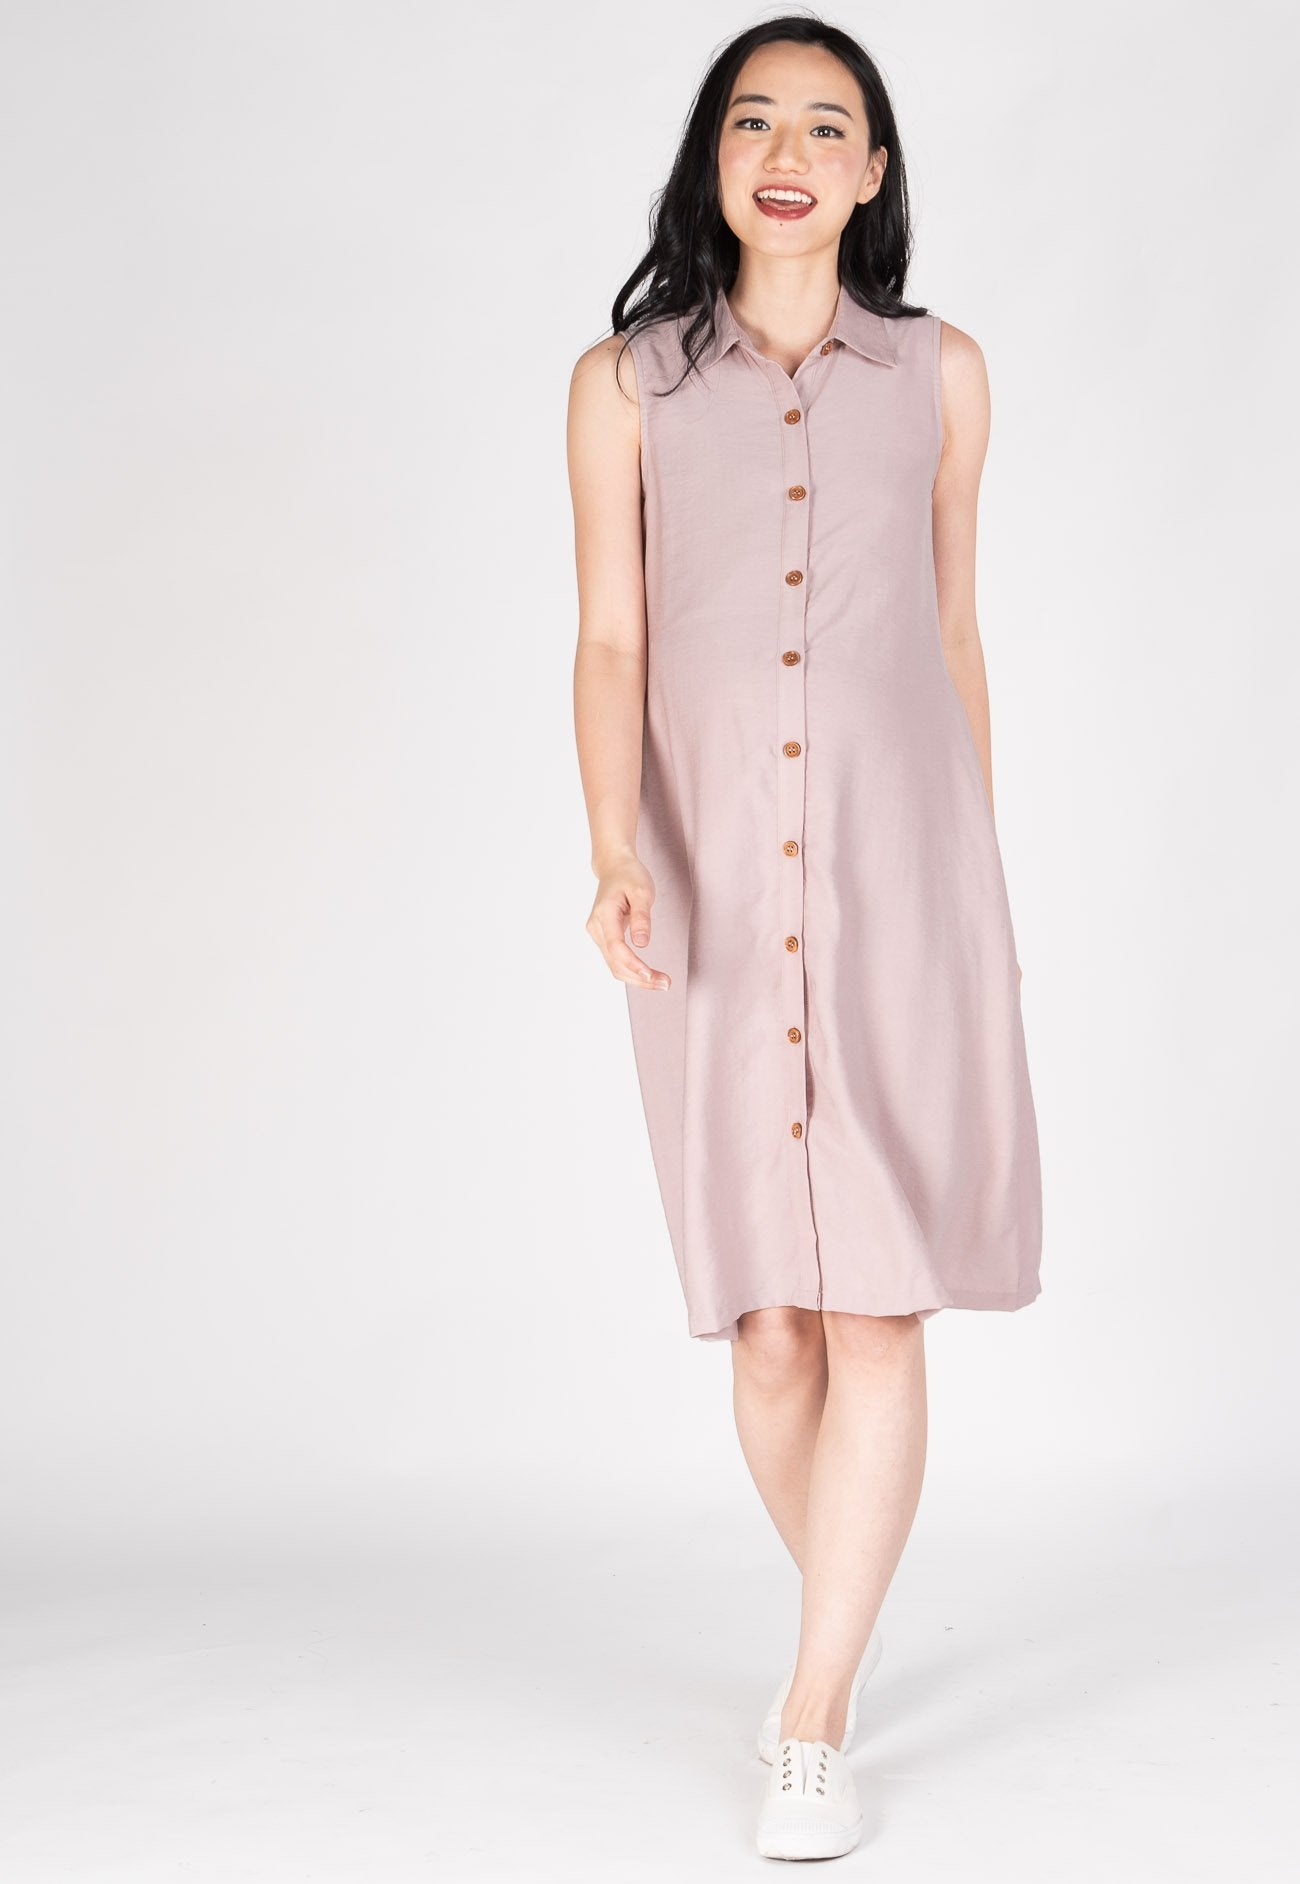 a03be456003 Joyfully Yours Nursing Midi Dress in Pink by Jump Eat Cry - Maternity and nursing  wear